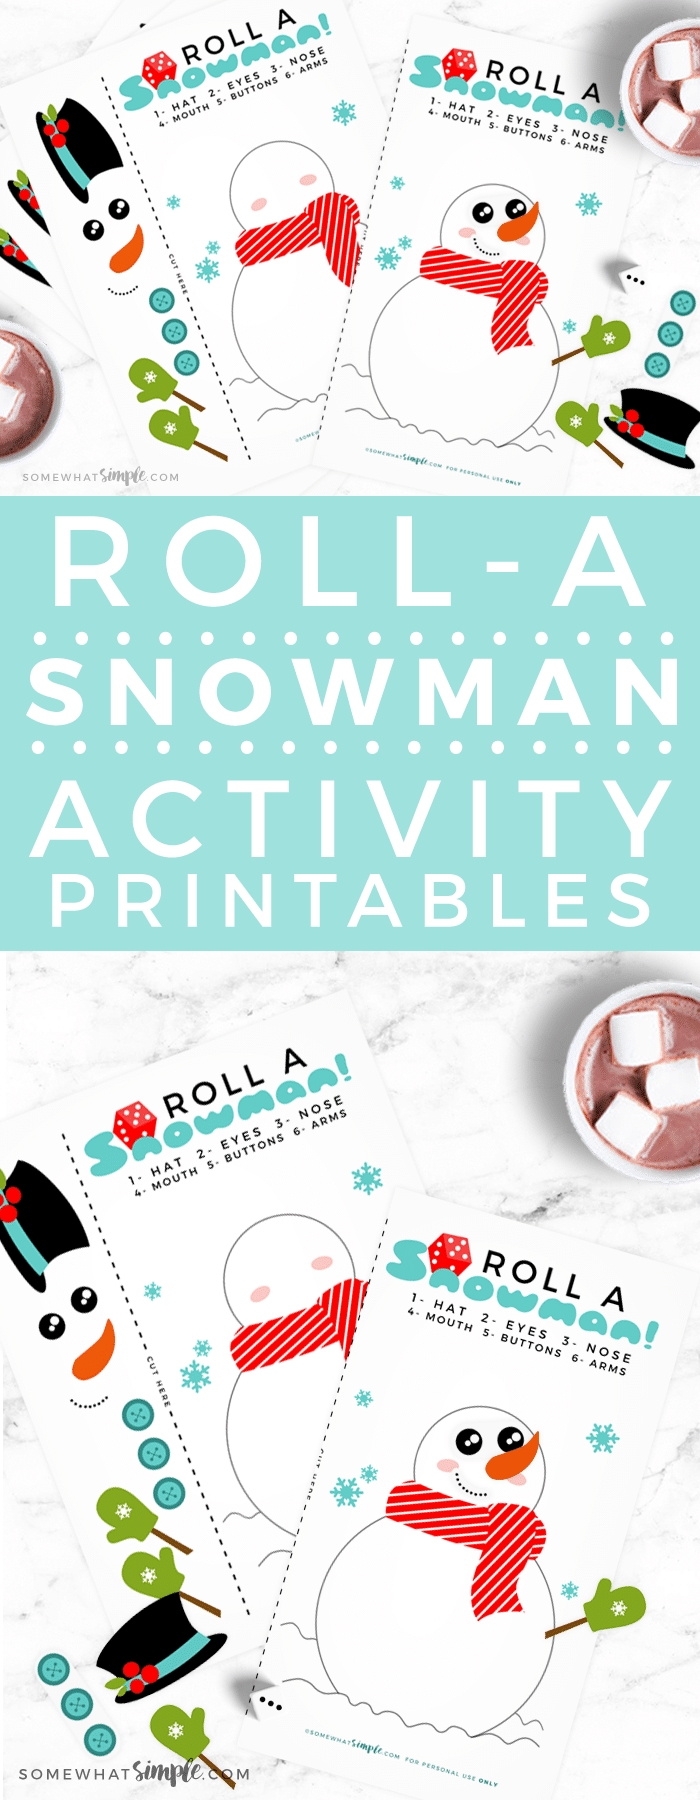 Get ready for a night of family fun this holiday season! This snowman dice game can't get any easier to prepare and play.